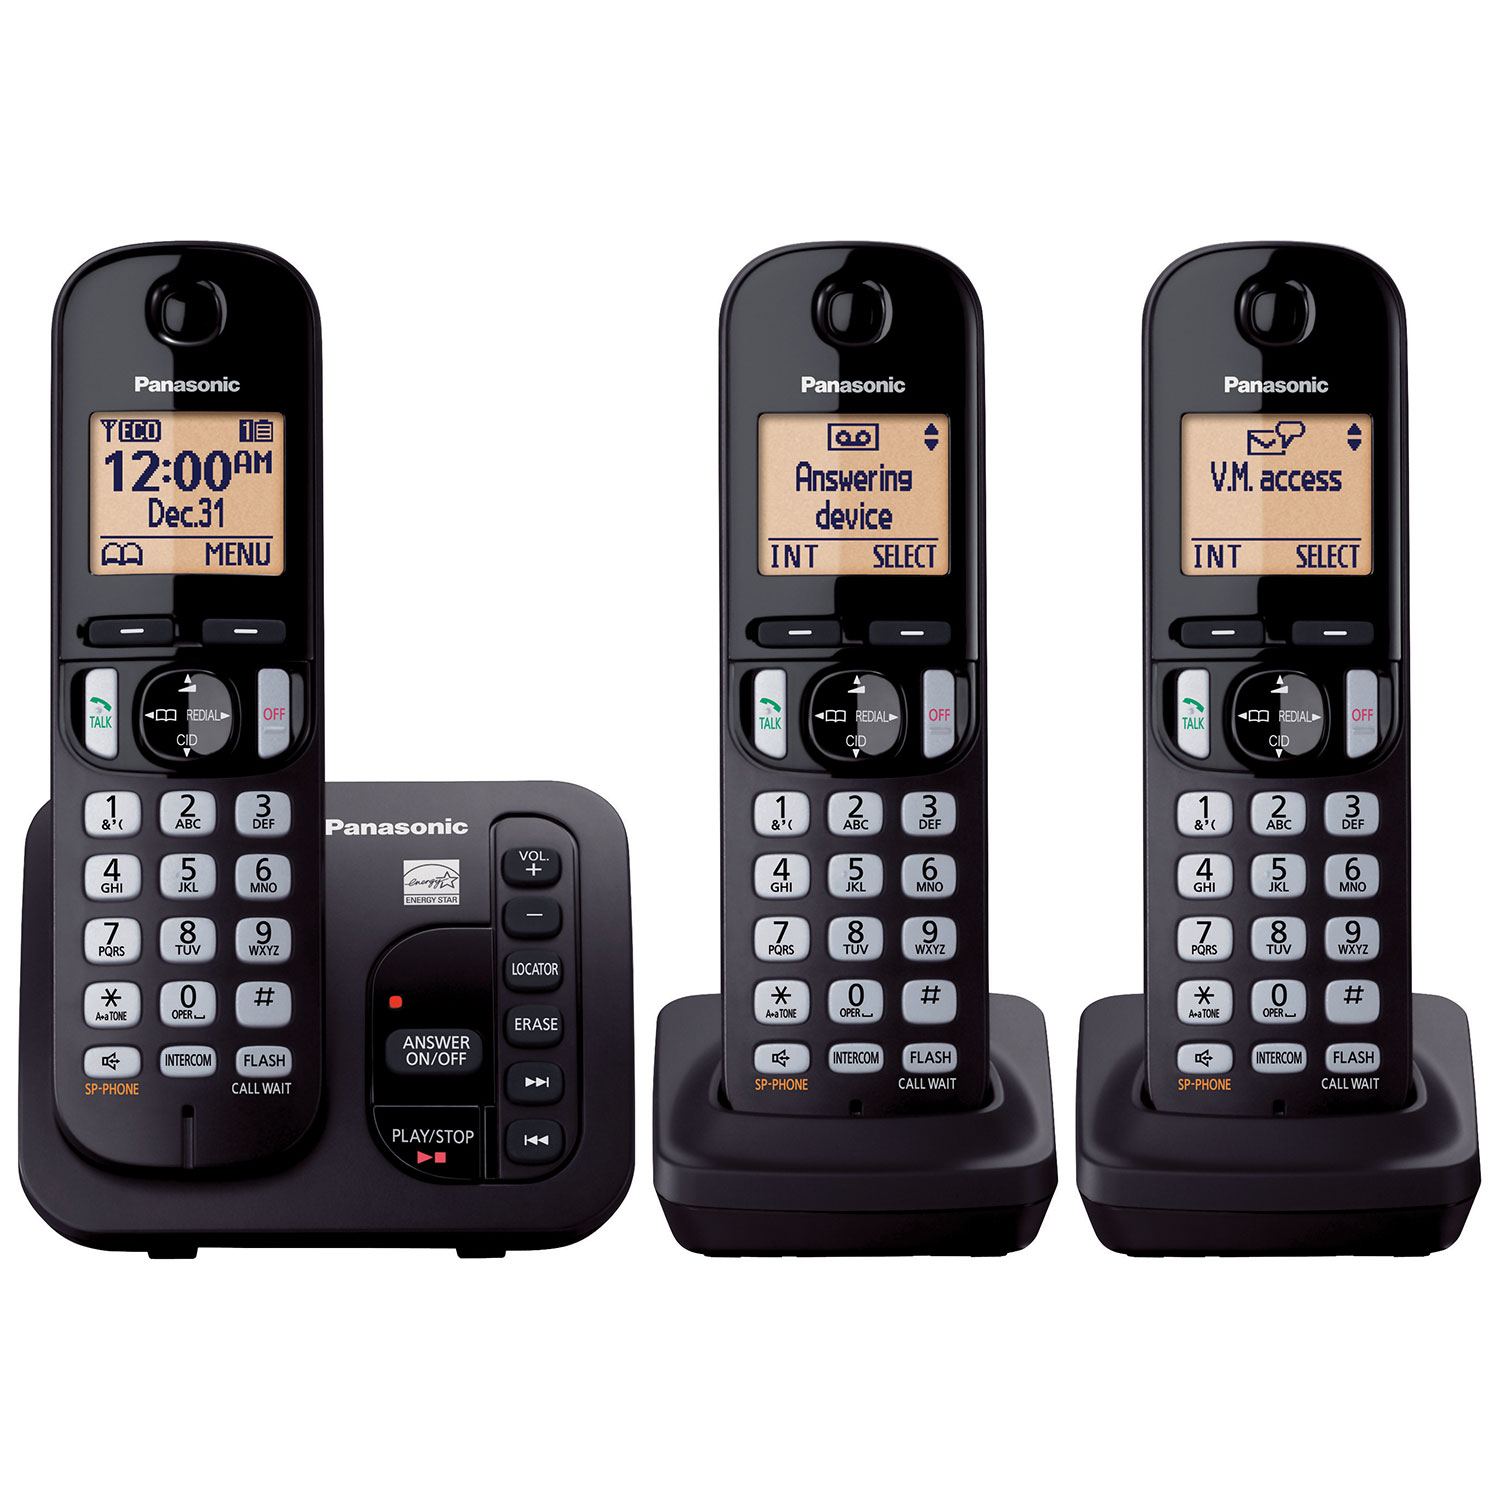 Panasonic 3 handest dect 60 cordless phone with answering machine panasonic 3 handest dect 60 cordless phone with answering machine kxtgc253b black only at best cordless phones best buy canada sciox Choice Image